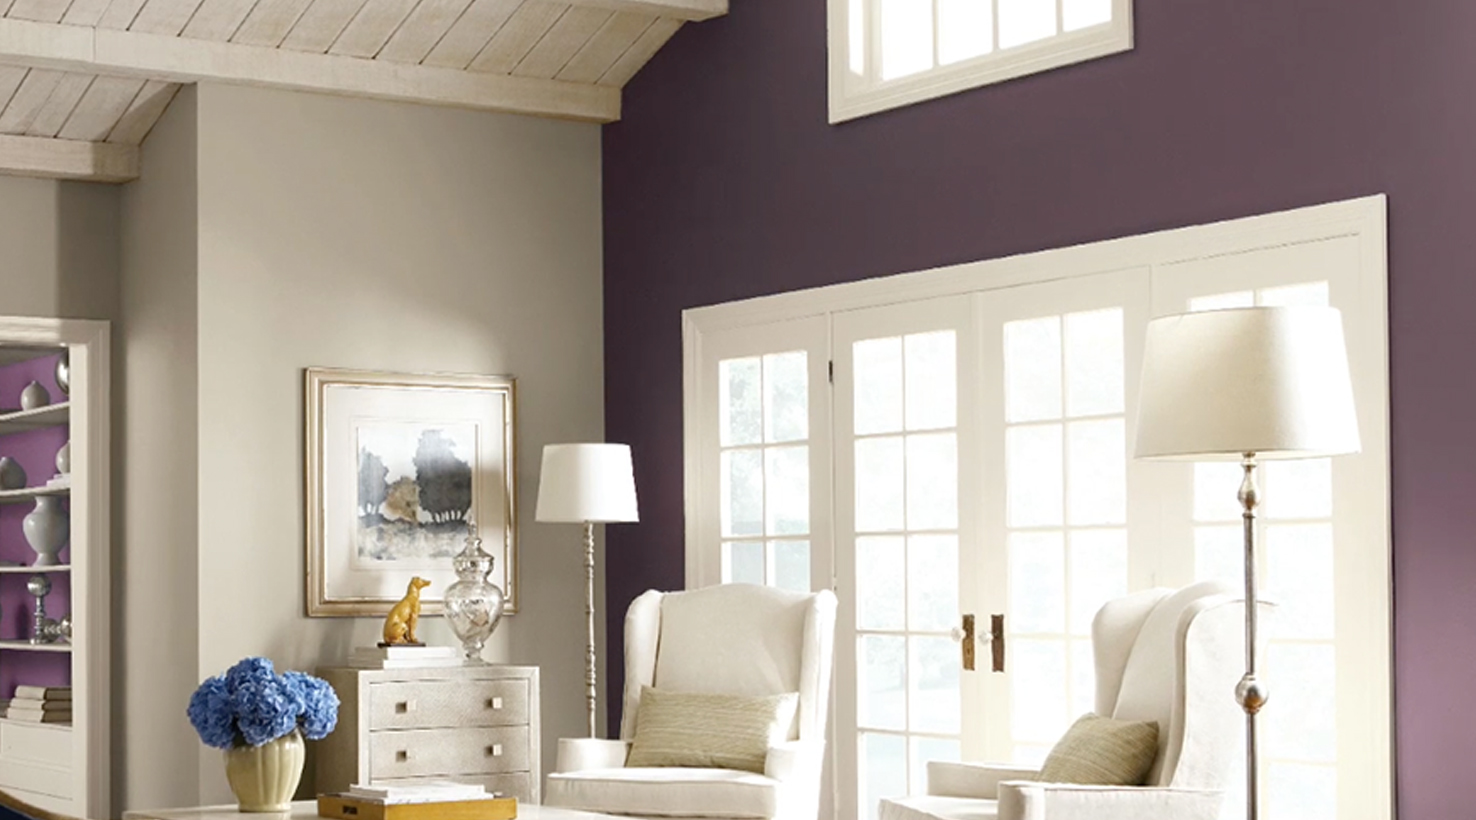 living room paint color ideas inspiration gallery on best neutral paint colors for living room sherwin williams living room id=95206